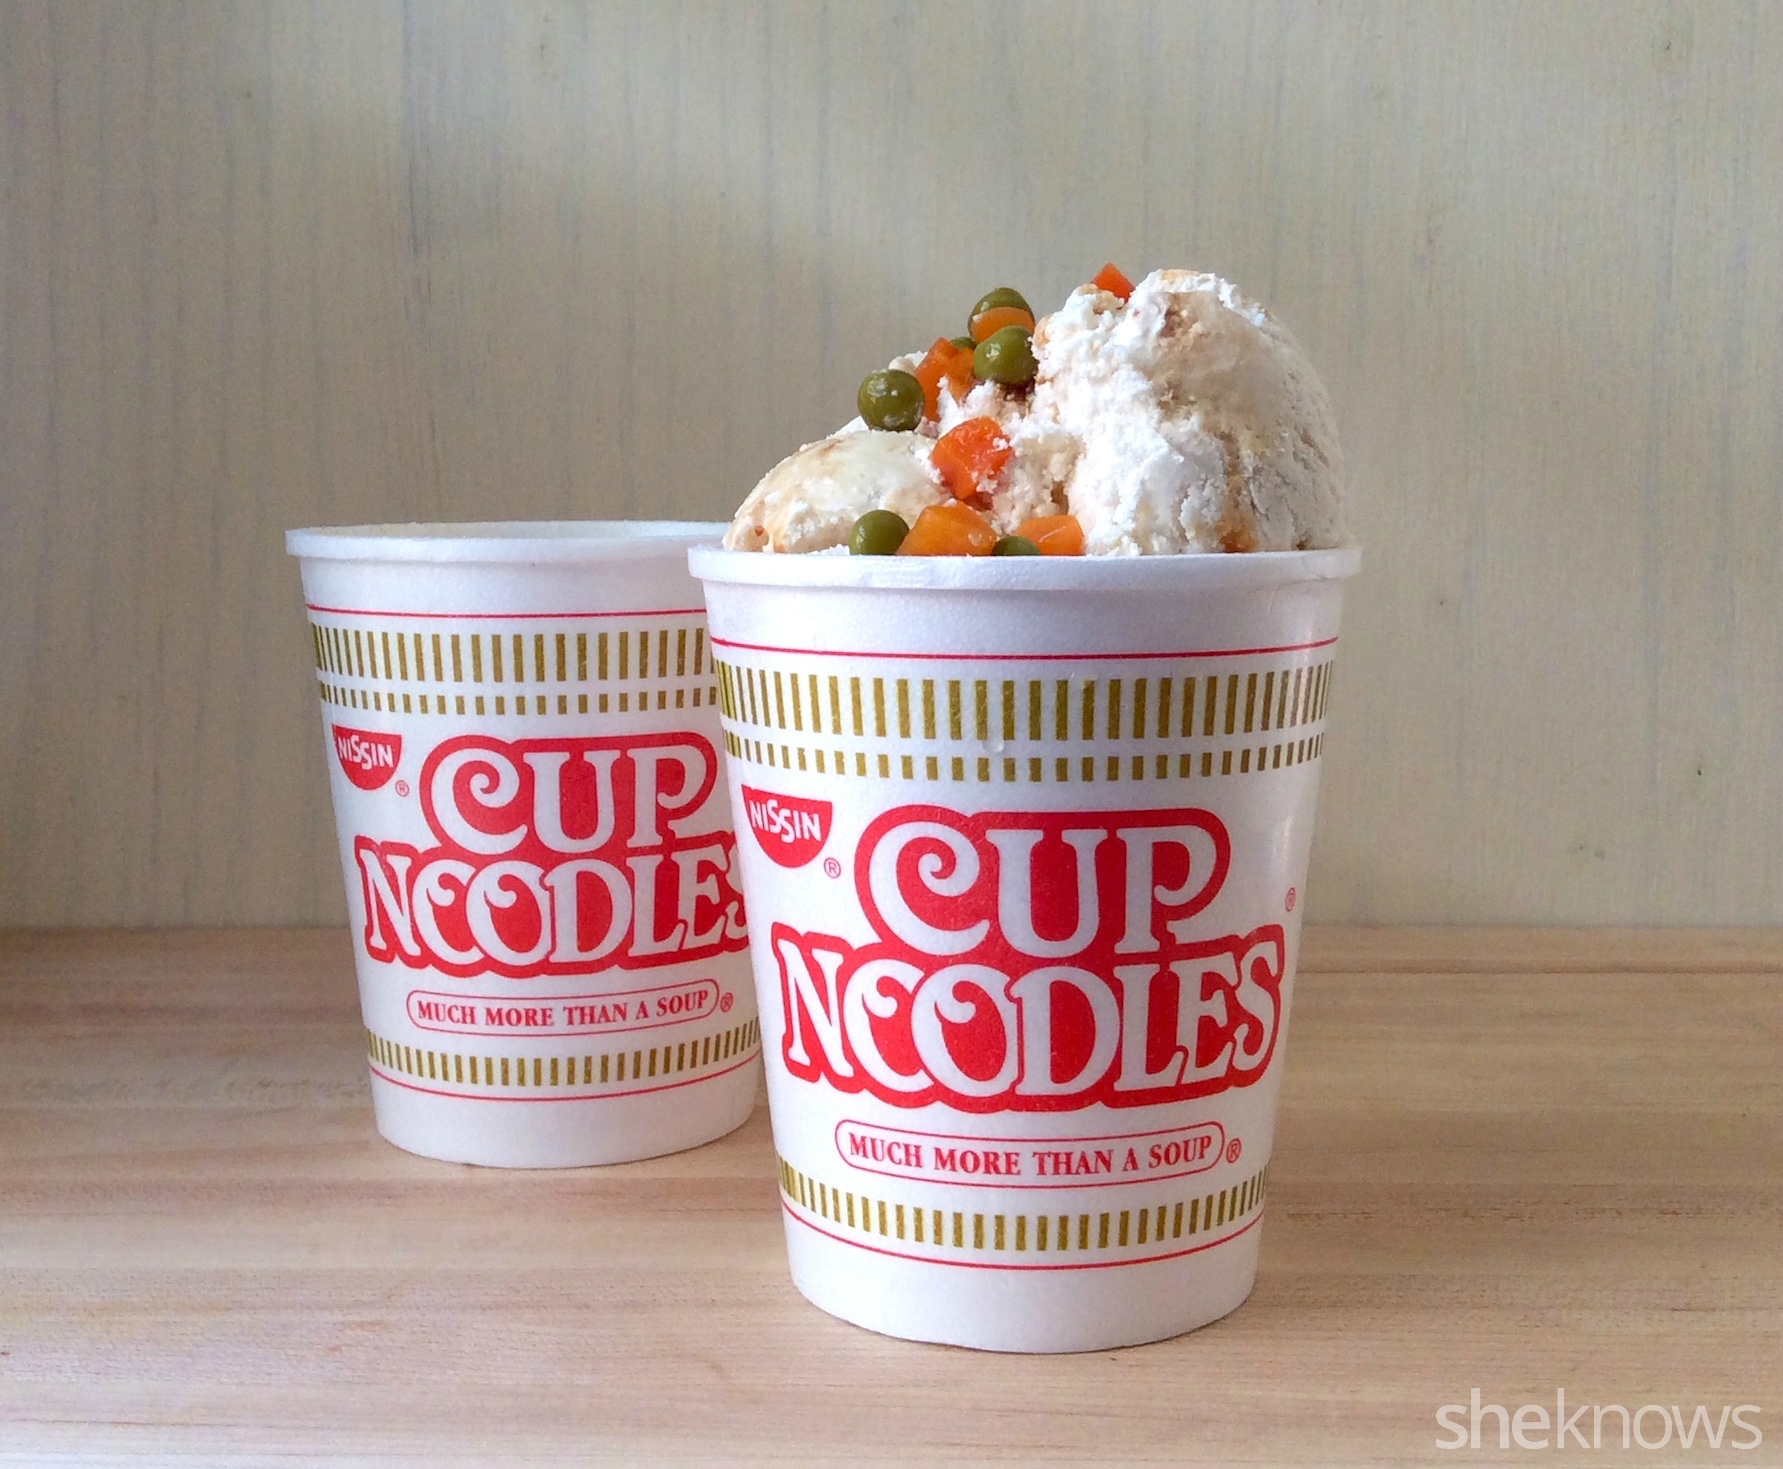 ramen ice cream in cup noodle container